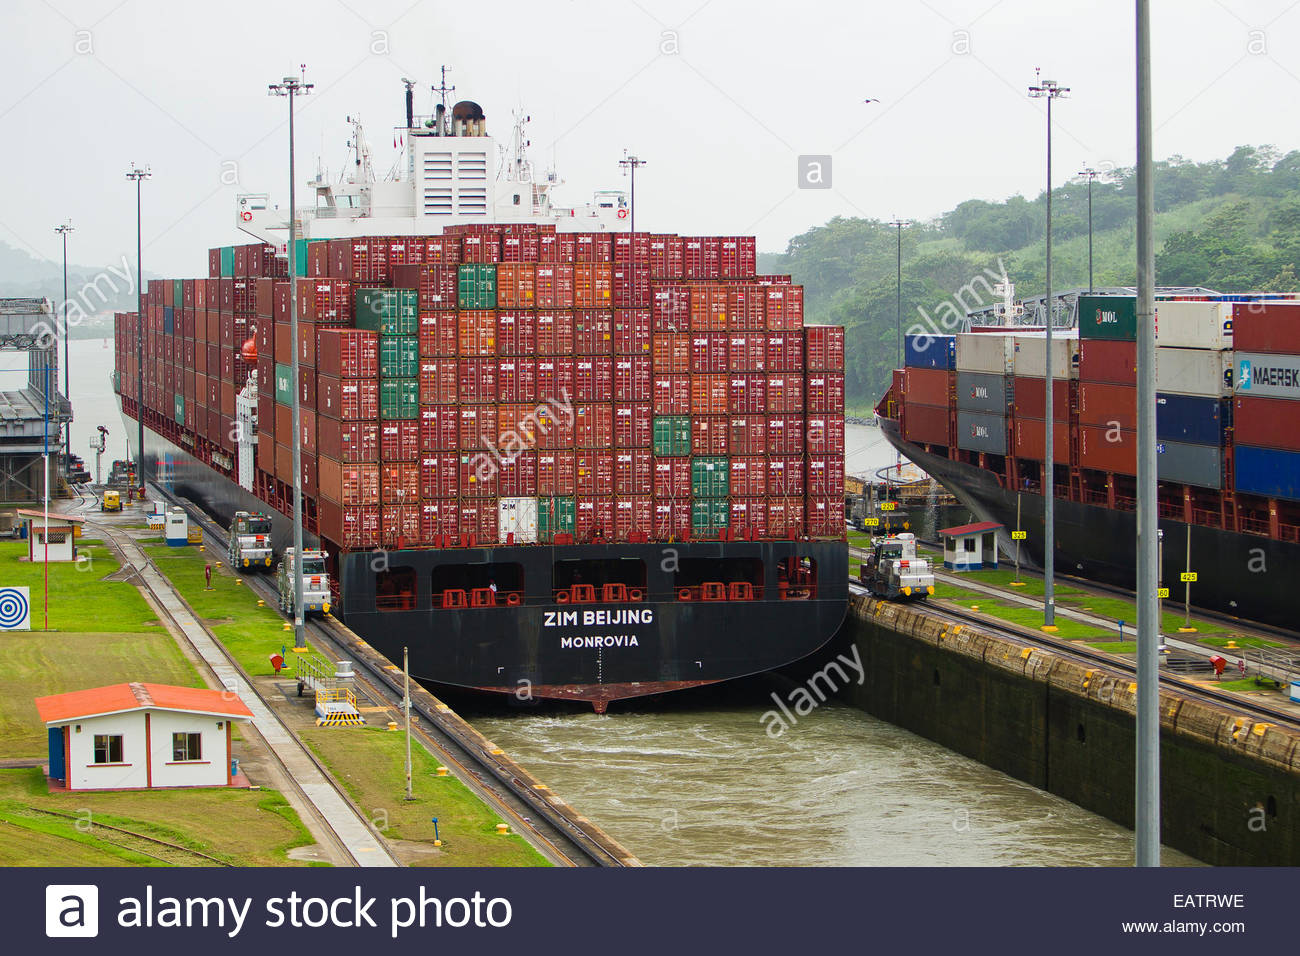 A Panamax ship at full capacity squeezes through the Miraflores Locks. - Stock Image